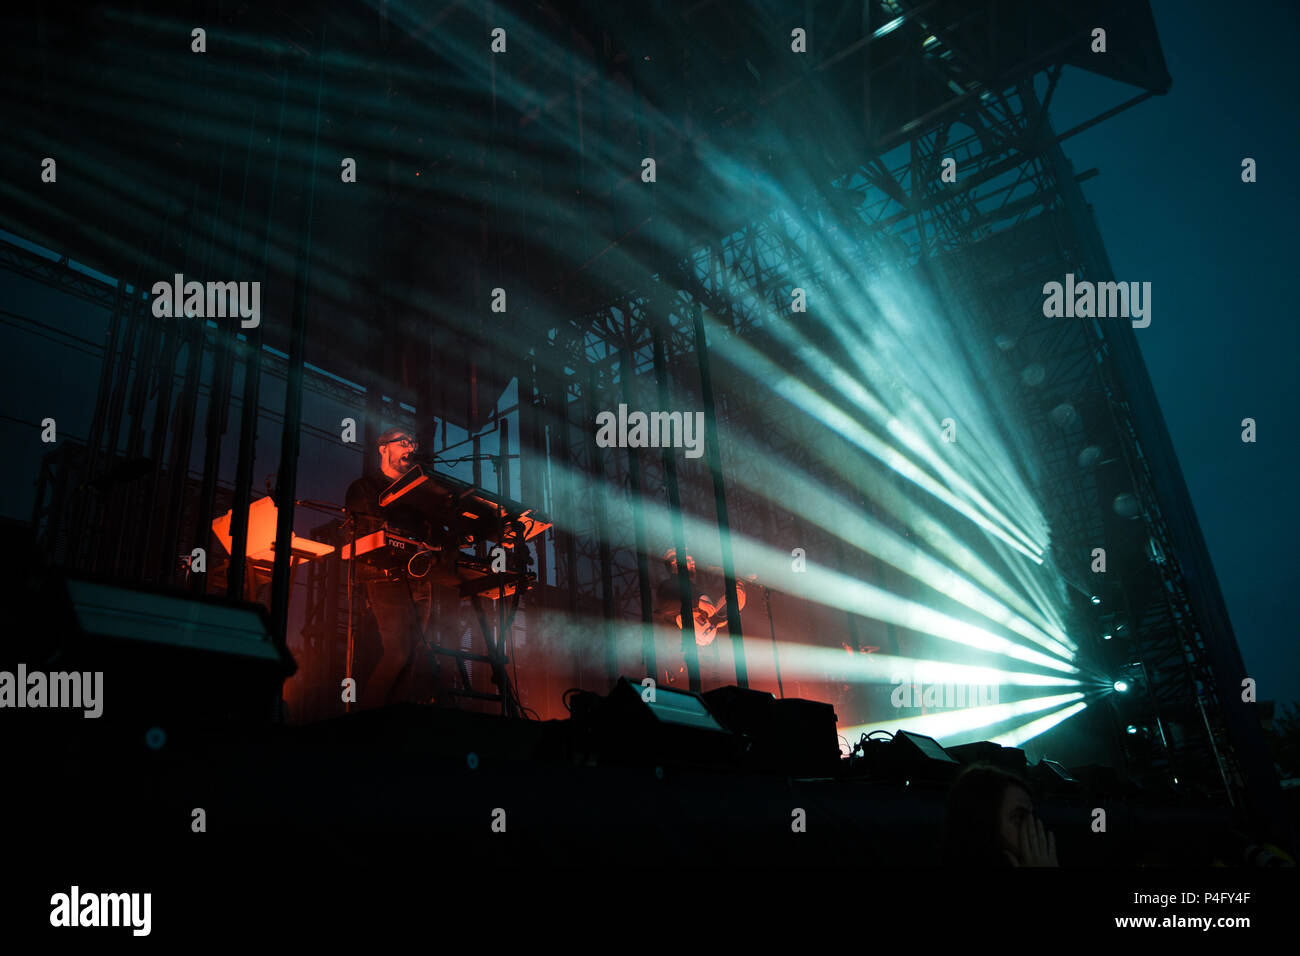 Gus Stock Photos Amp Gus Stock Images Alamy